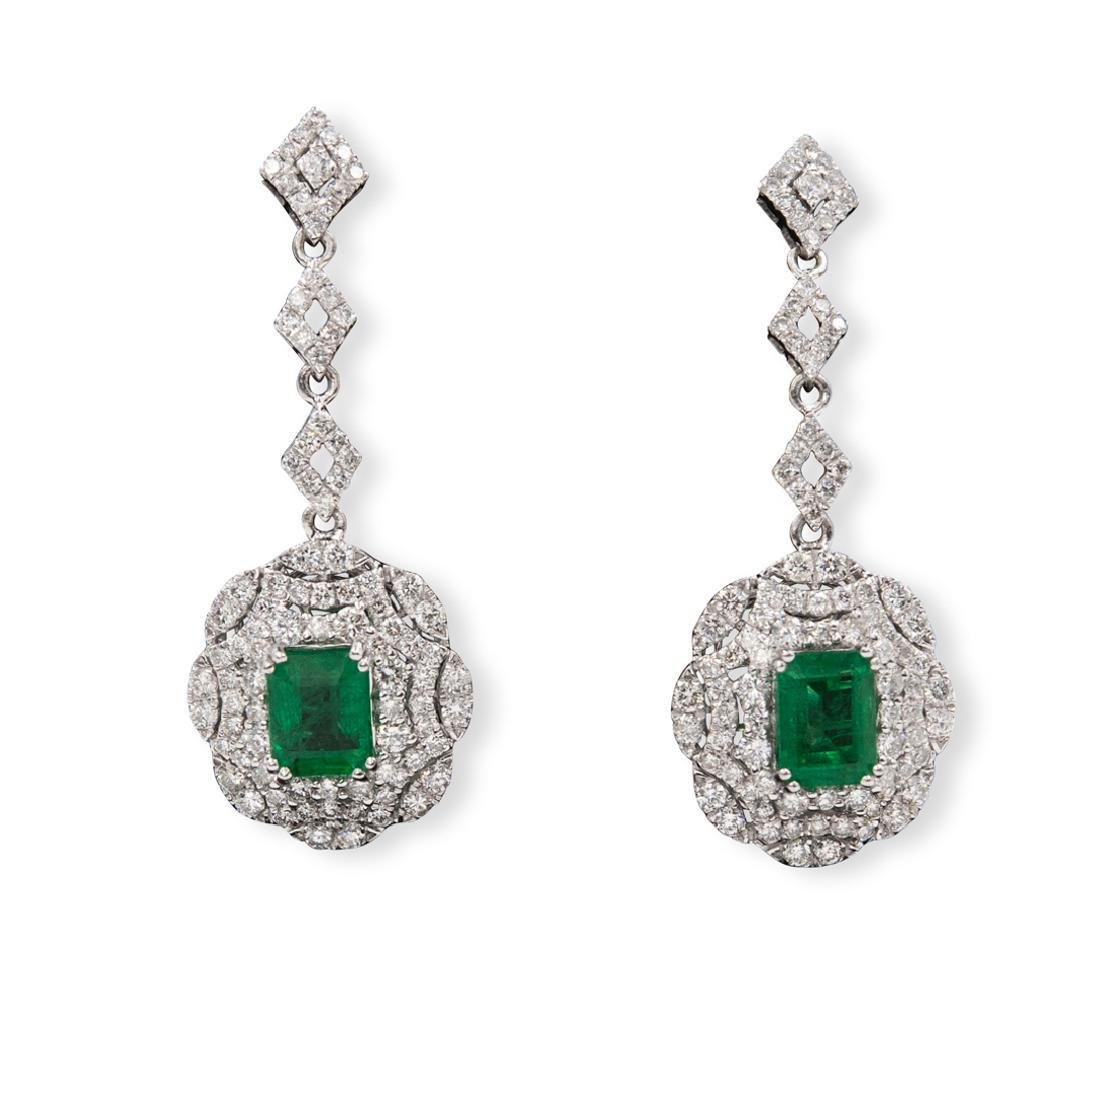 Pair Of Platinum, Emerald and Diamond Earrings - 2